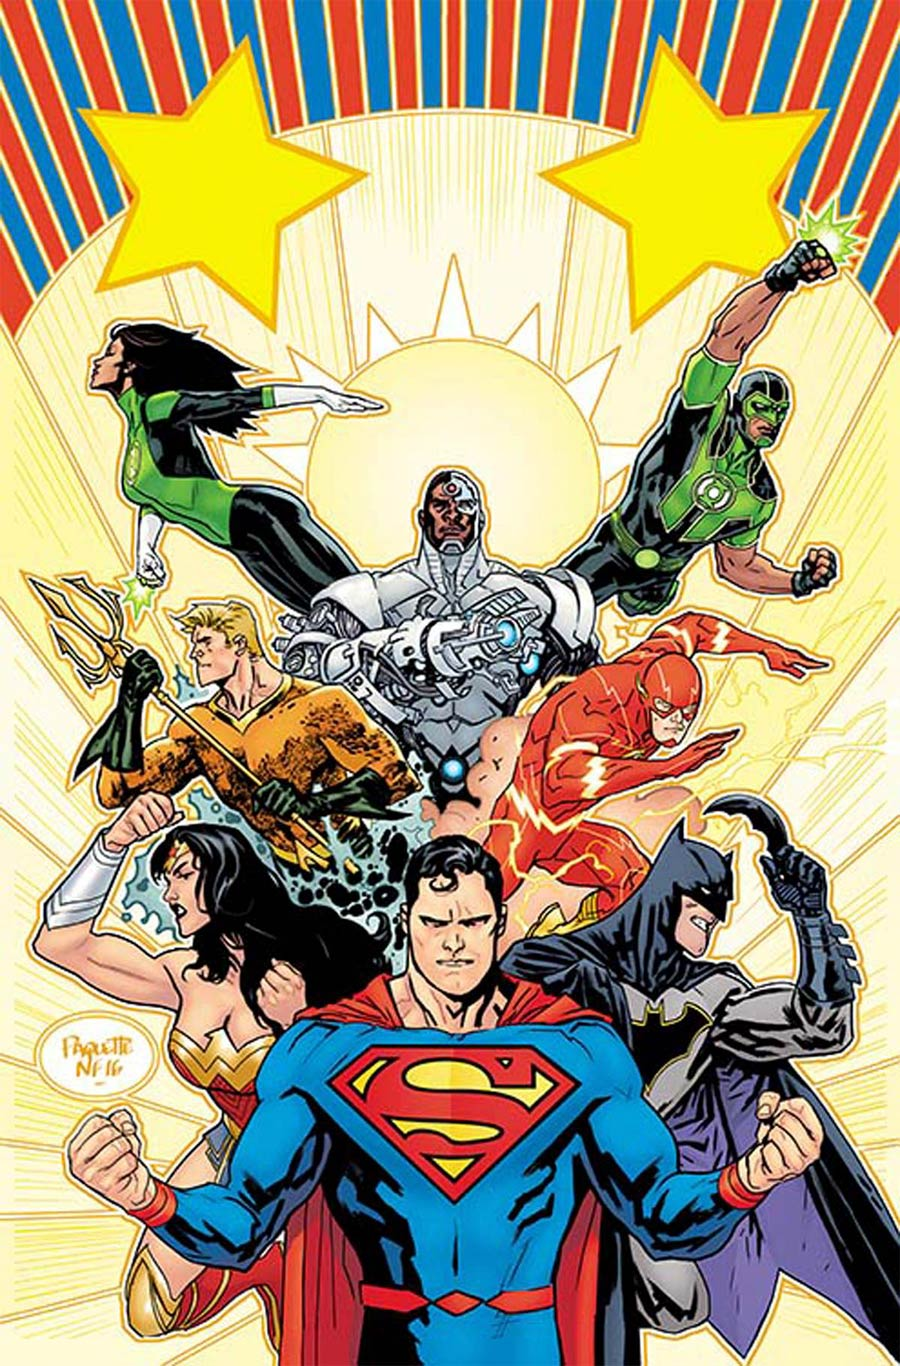 Midtown Comics Justice League 1 Yanick Paquette